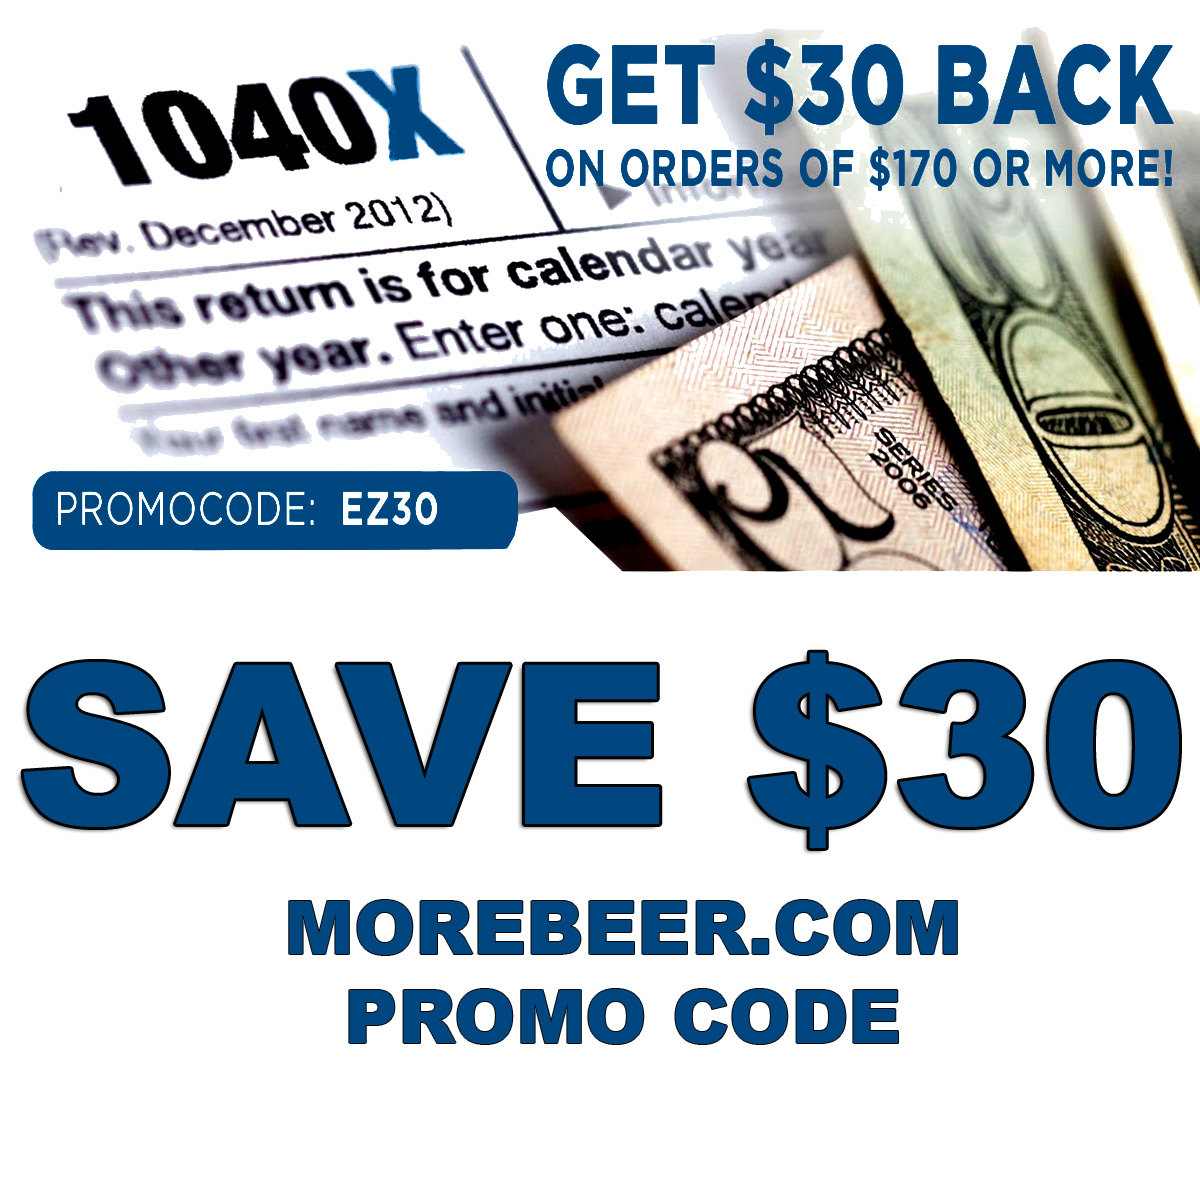 Home Wine Making Coupon Codes for Save $30 On Orders Of $170 Or More at Morebeer.com Coupon Code Coupon Code